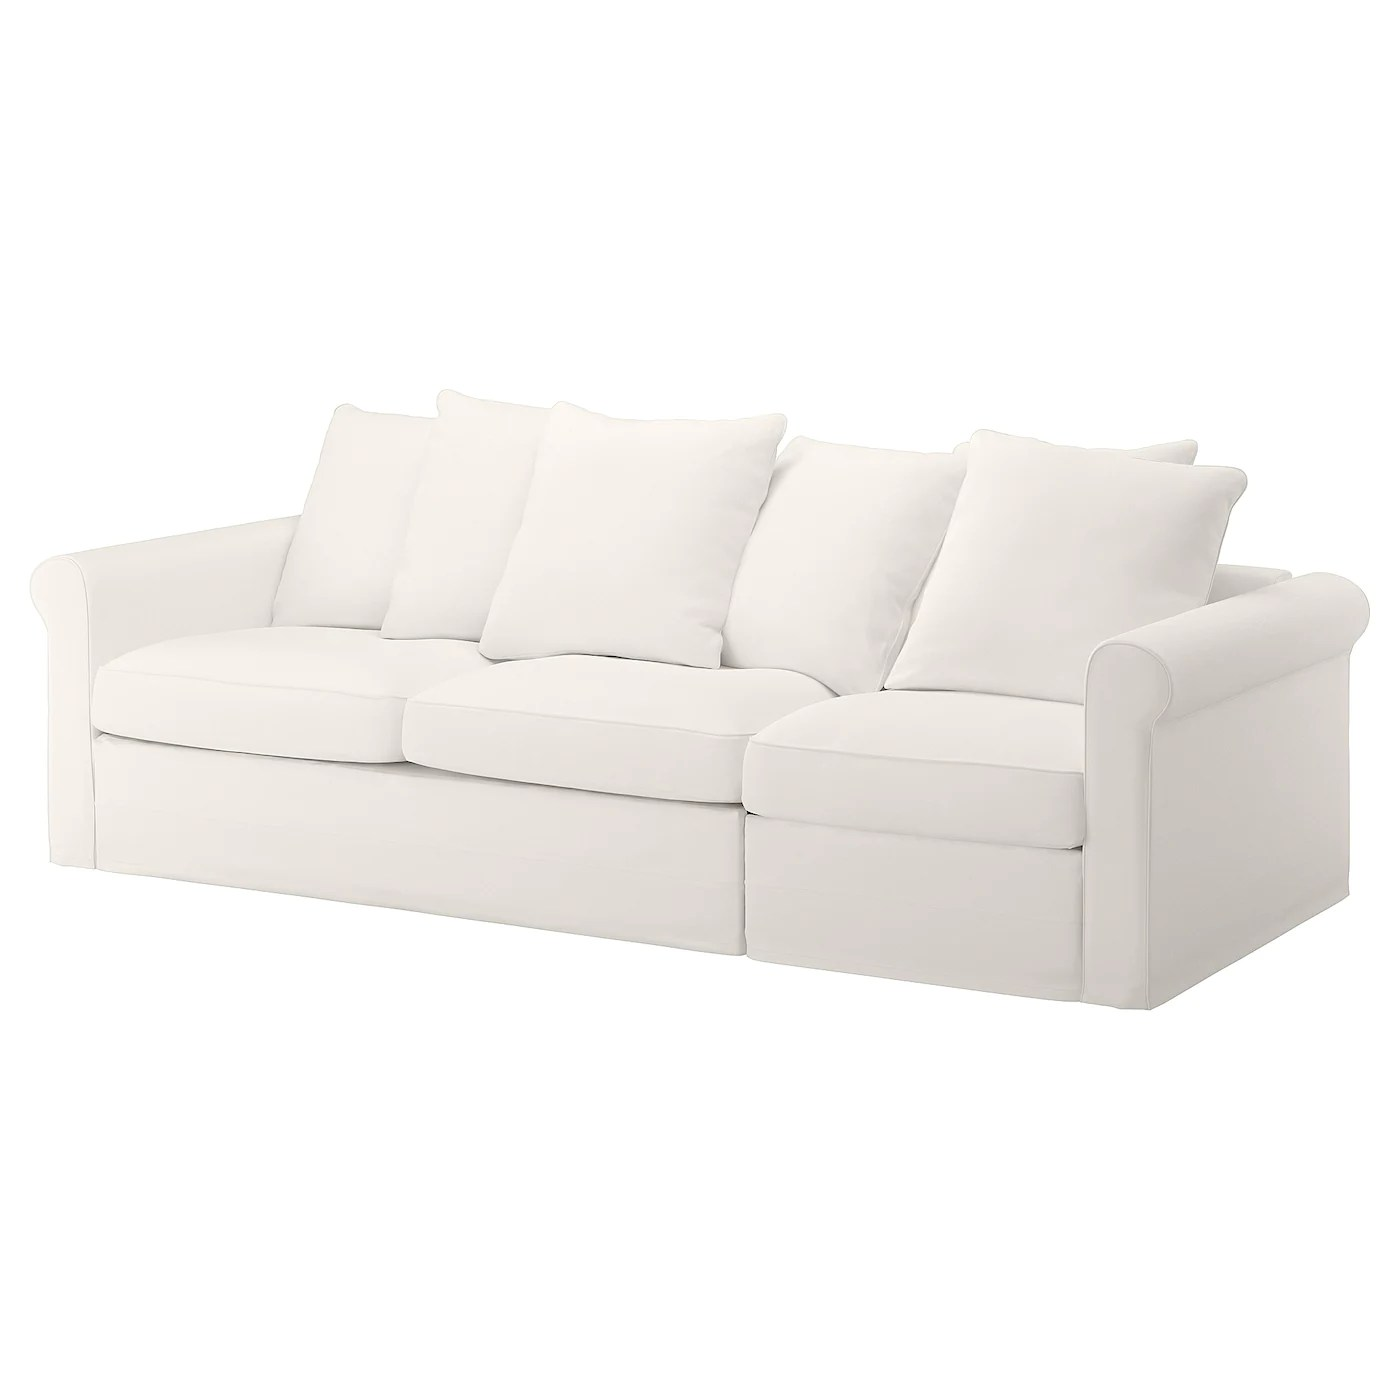 Sofa For Sale Wirral Sofa Beds Corner Sofa Beds Futons Ikea